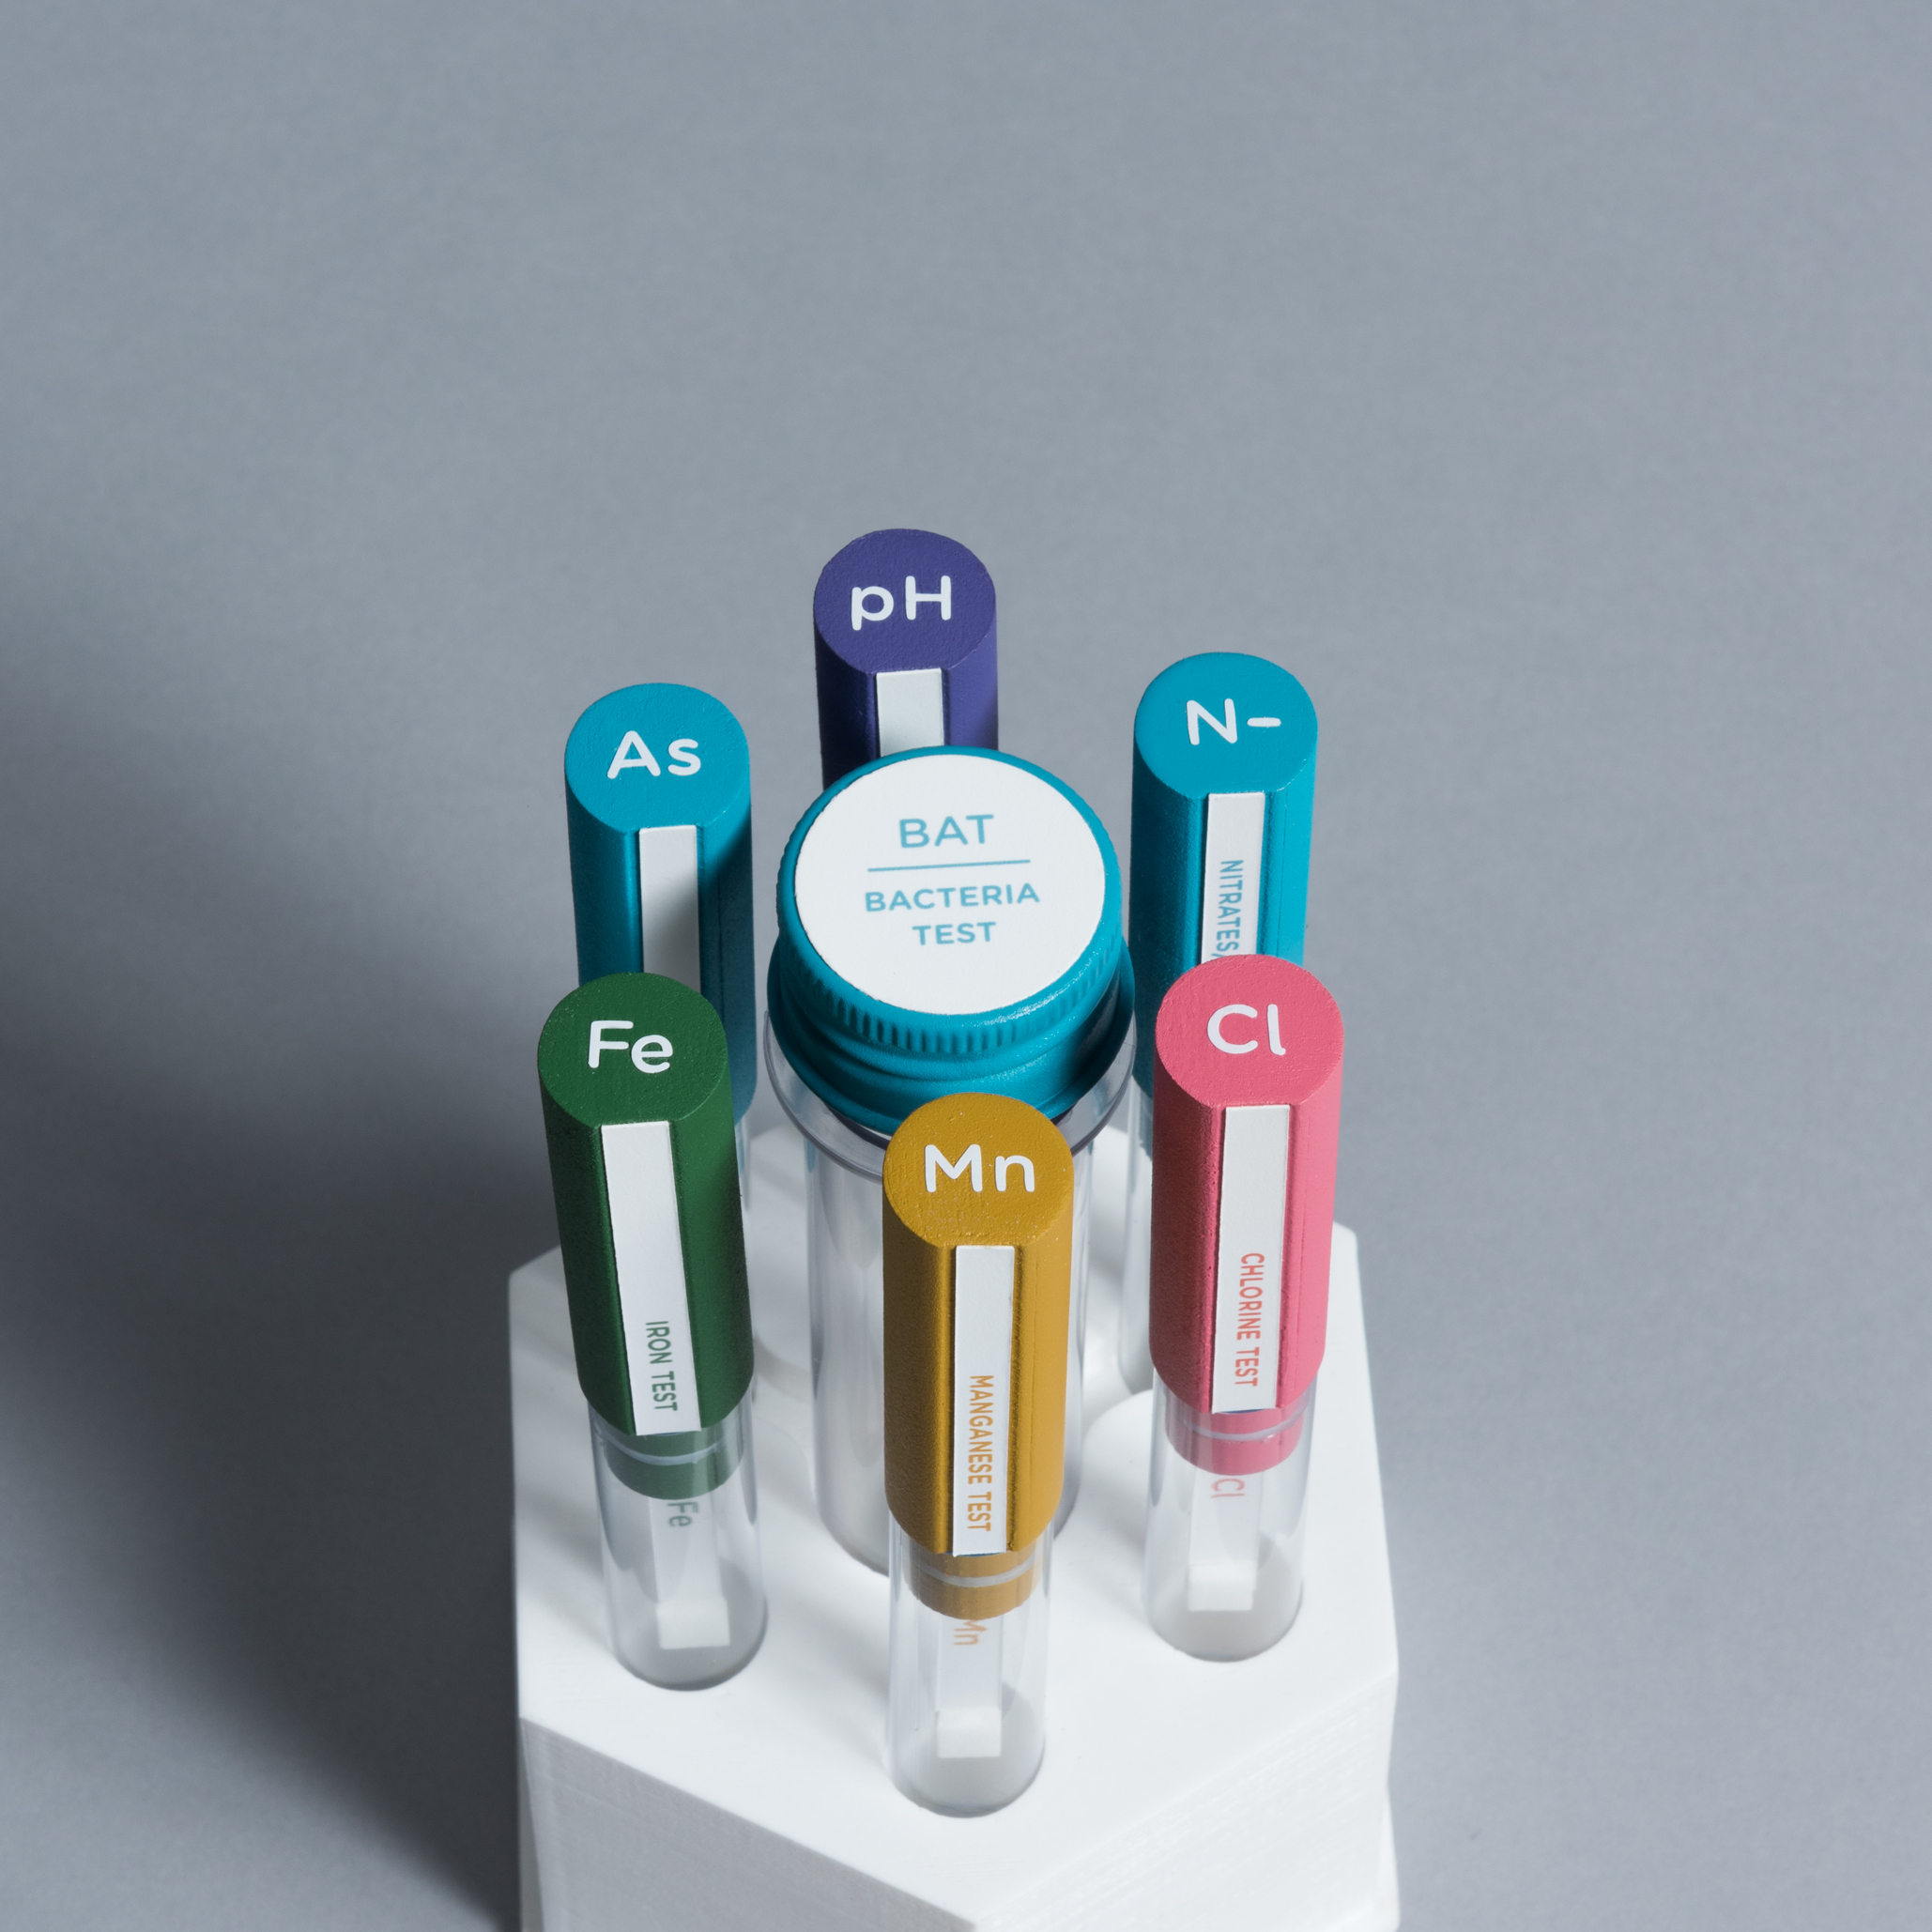 Top of a hexagonal package with a set of 6 small and 1 large test tube